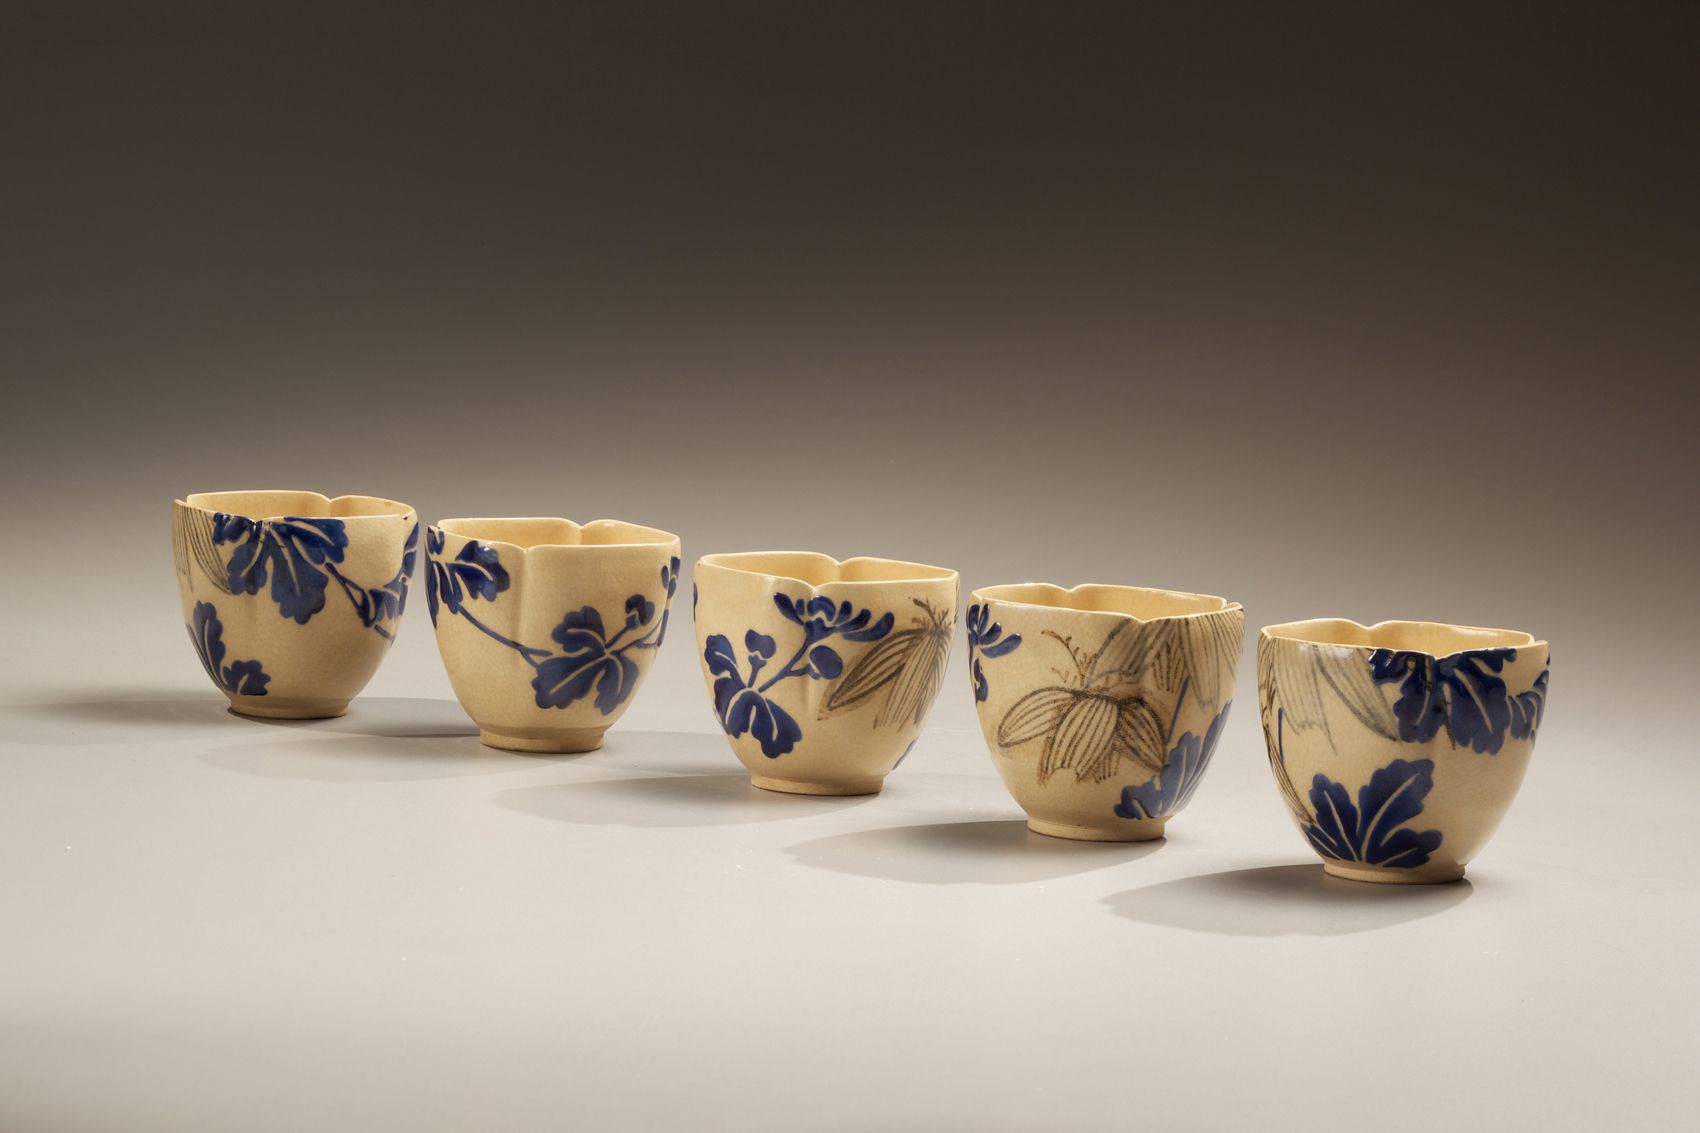 Unknown, A set of 5 small bowls of Mizoro-yaki style of Kyoto